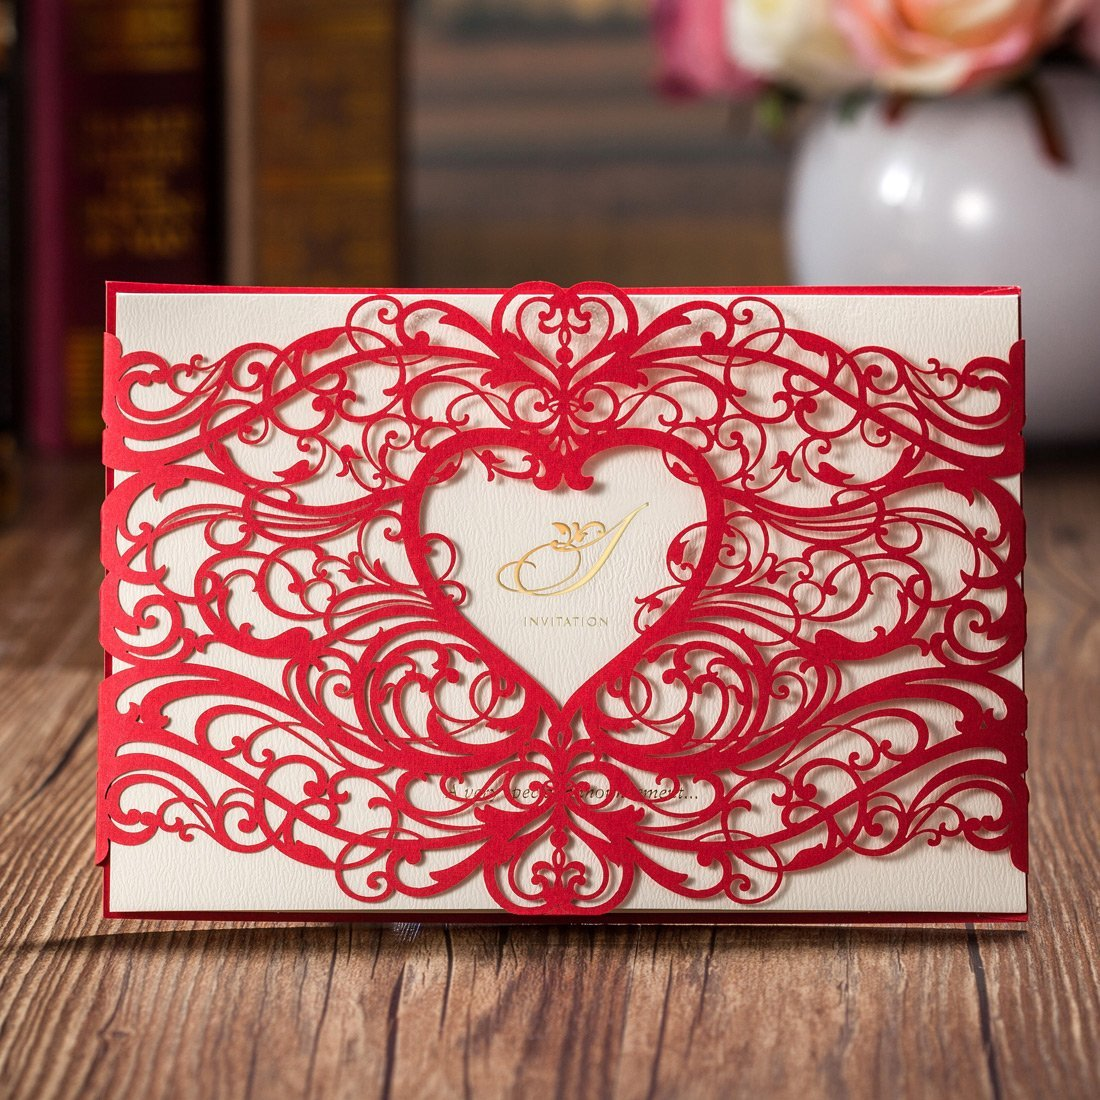 Wedding Pocket Invitation Kits: Amazon.com